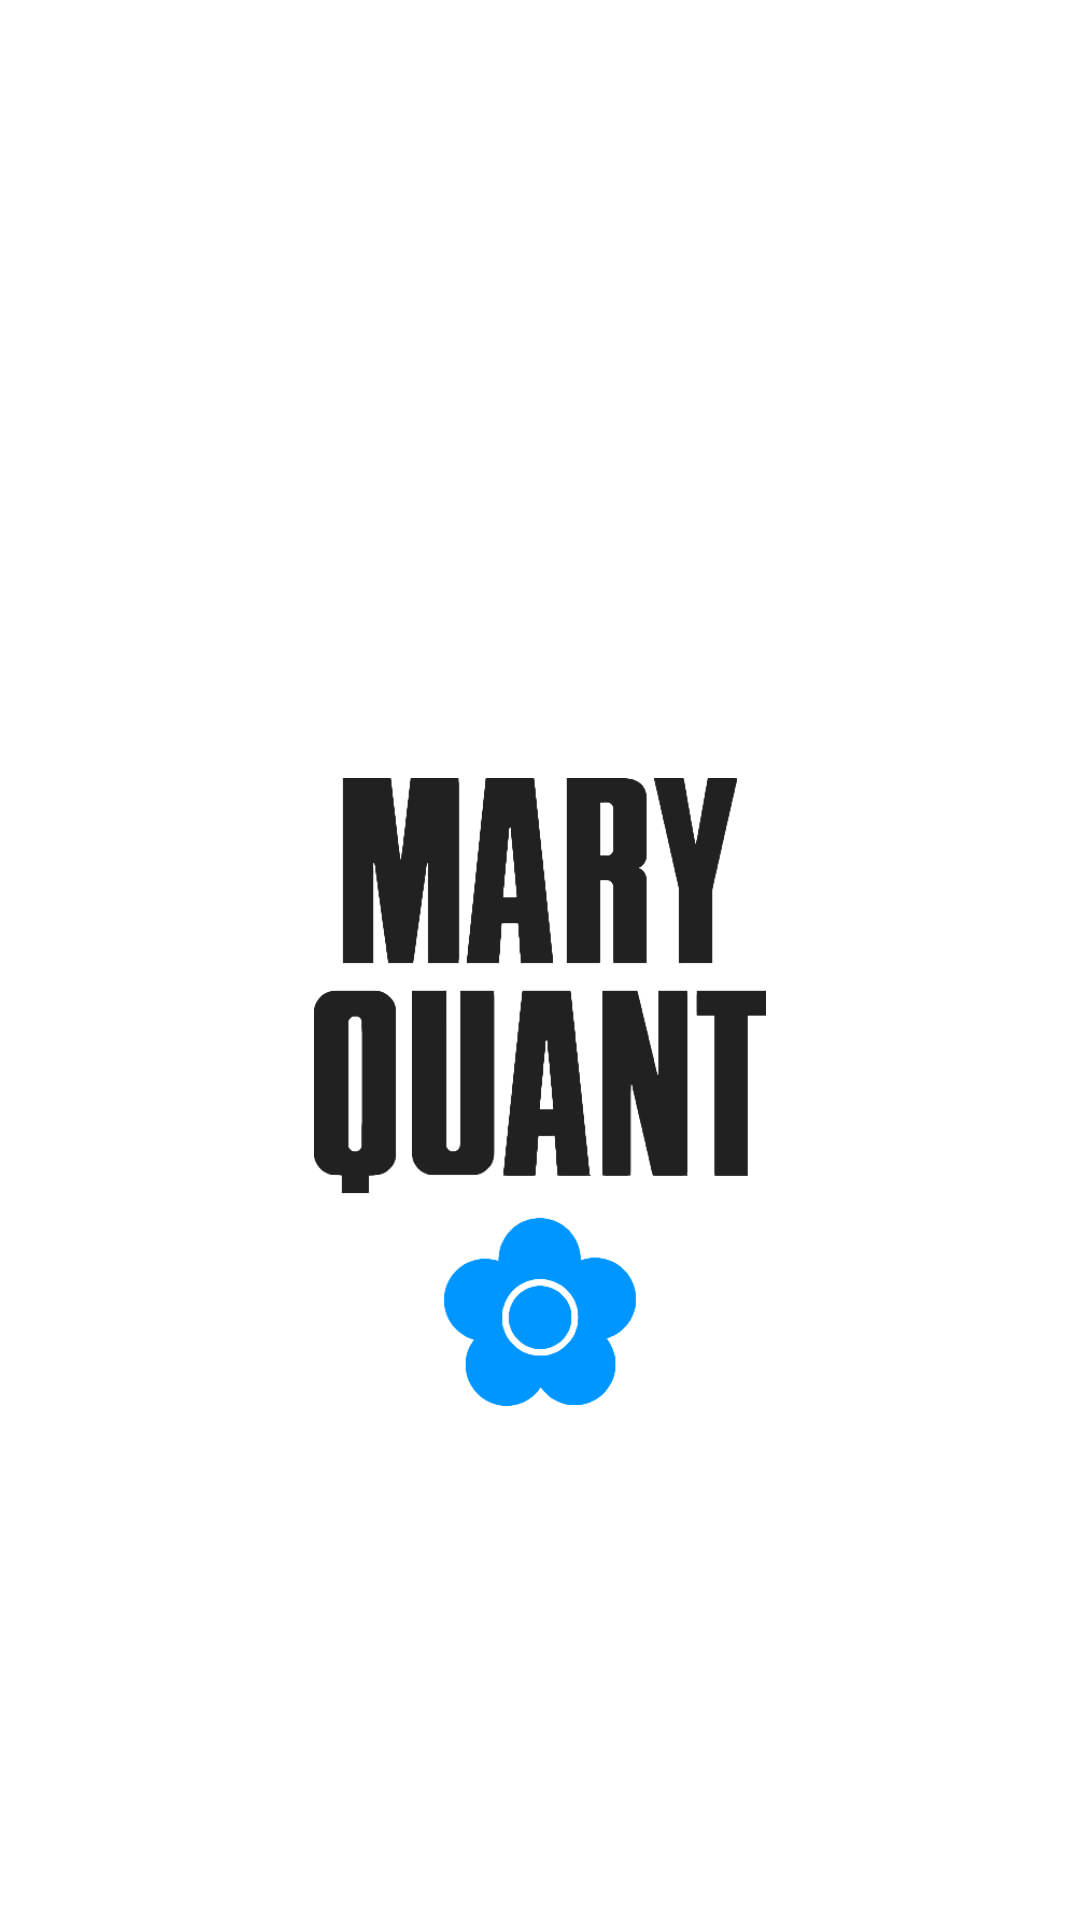 maryquant i17 - 20 MARY QUANT HQ Smartphone Wallpaper Collection